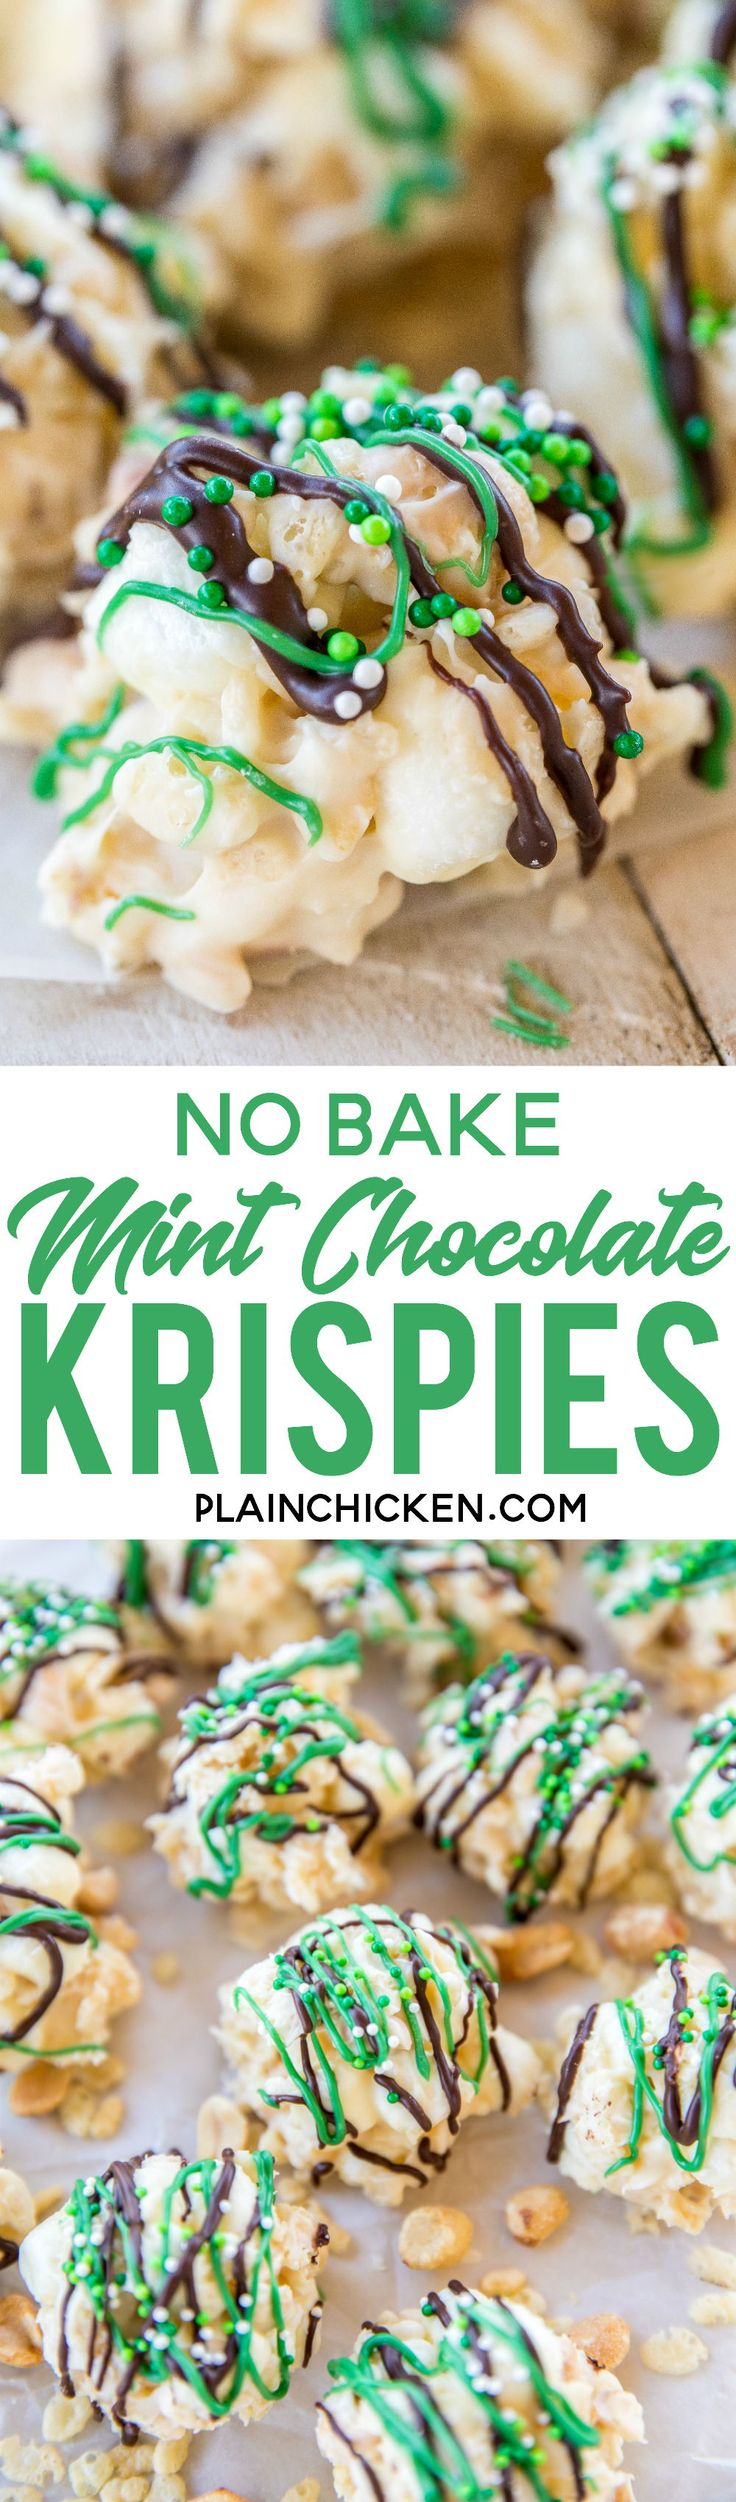 No-Bake Mint Chocolate Krispies - only 5 ingredients and 5 minutes! These are dangerously delicious! Drizzle with melted chocolate and green candy melts for a festive St. Patrick's Day treat!! Almond bark, peppermint oil, rice krispies, peanuts and marshmallows.